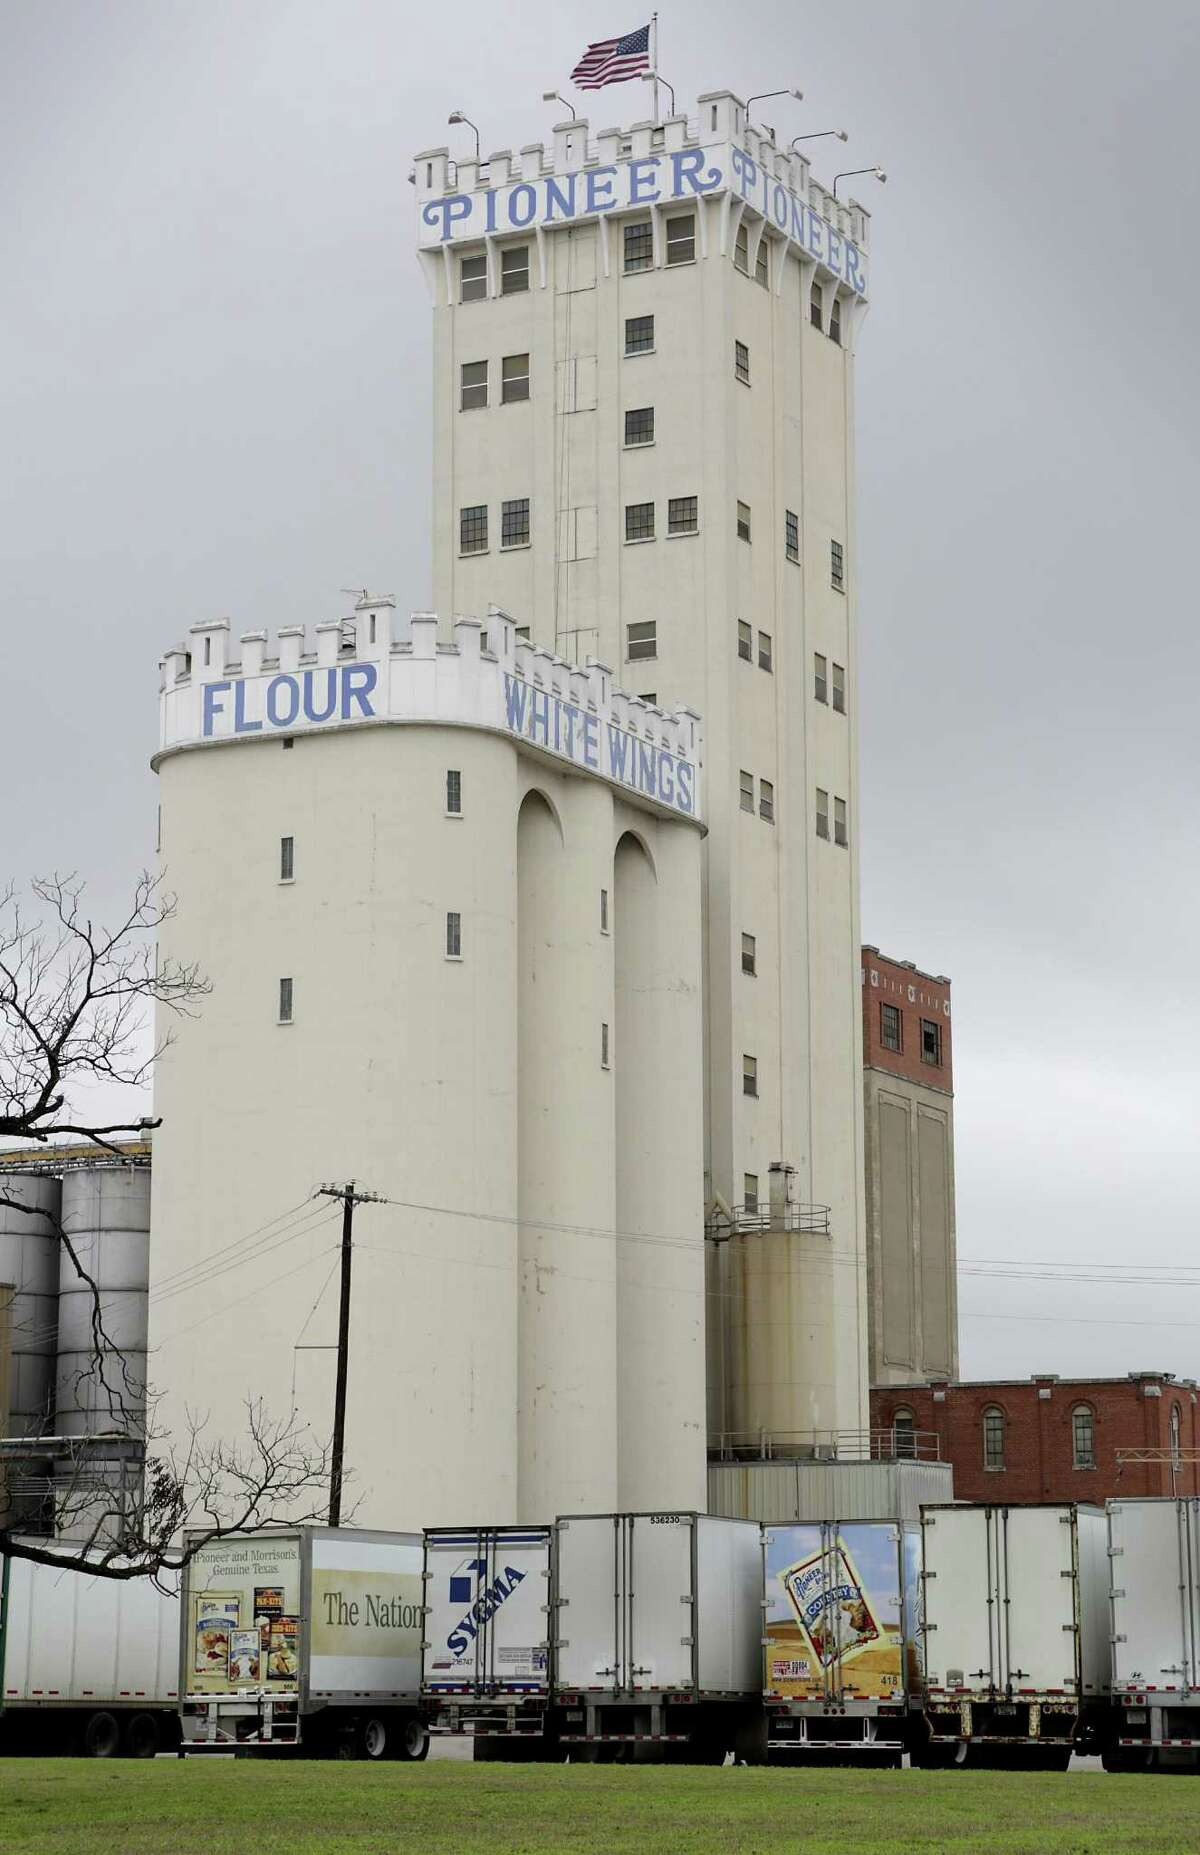 C.H. Guenther and Son Inc., the parent company of the Pioneer Flour Mills and the Guenther House restaurant, was under family ownership for about 166 years.